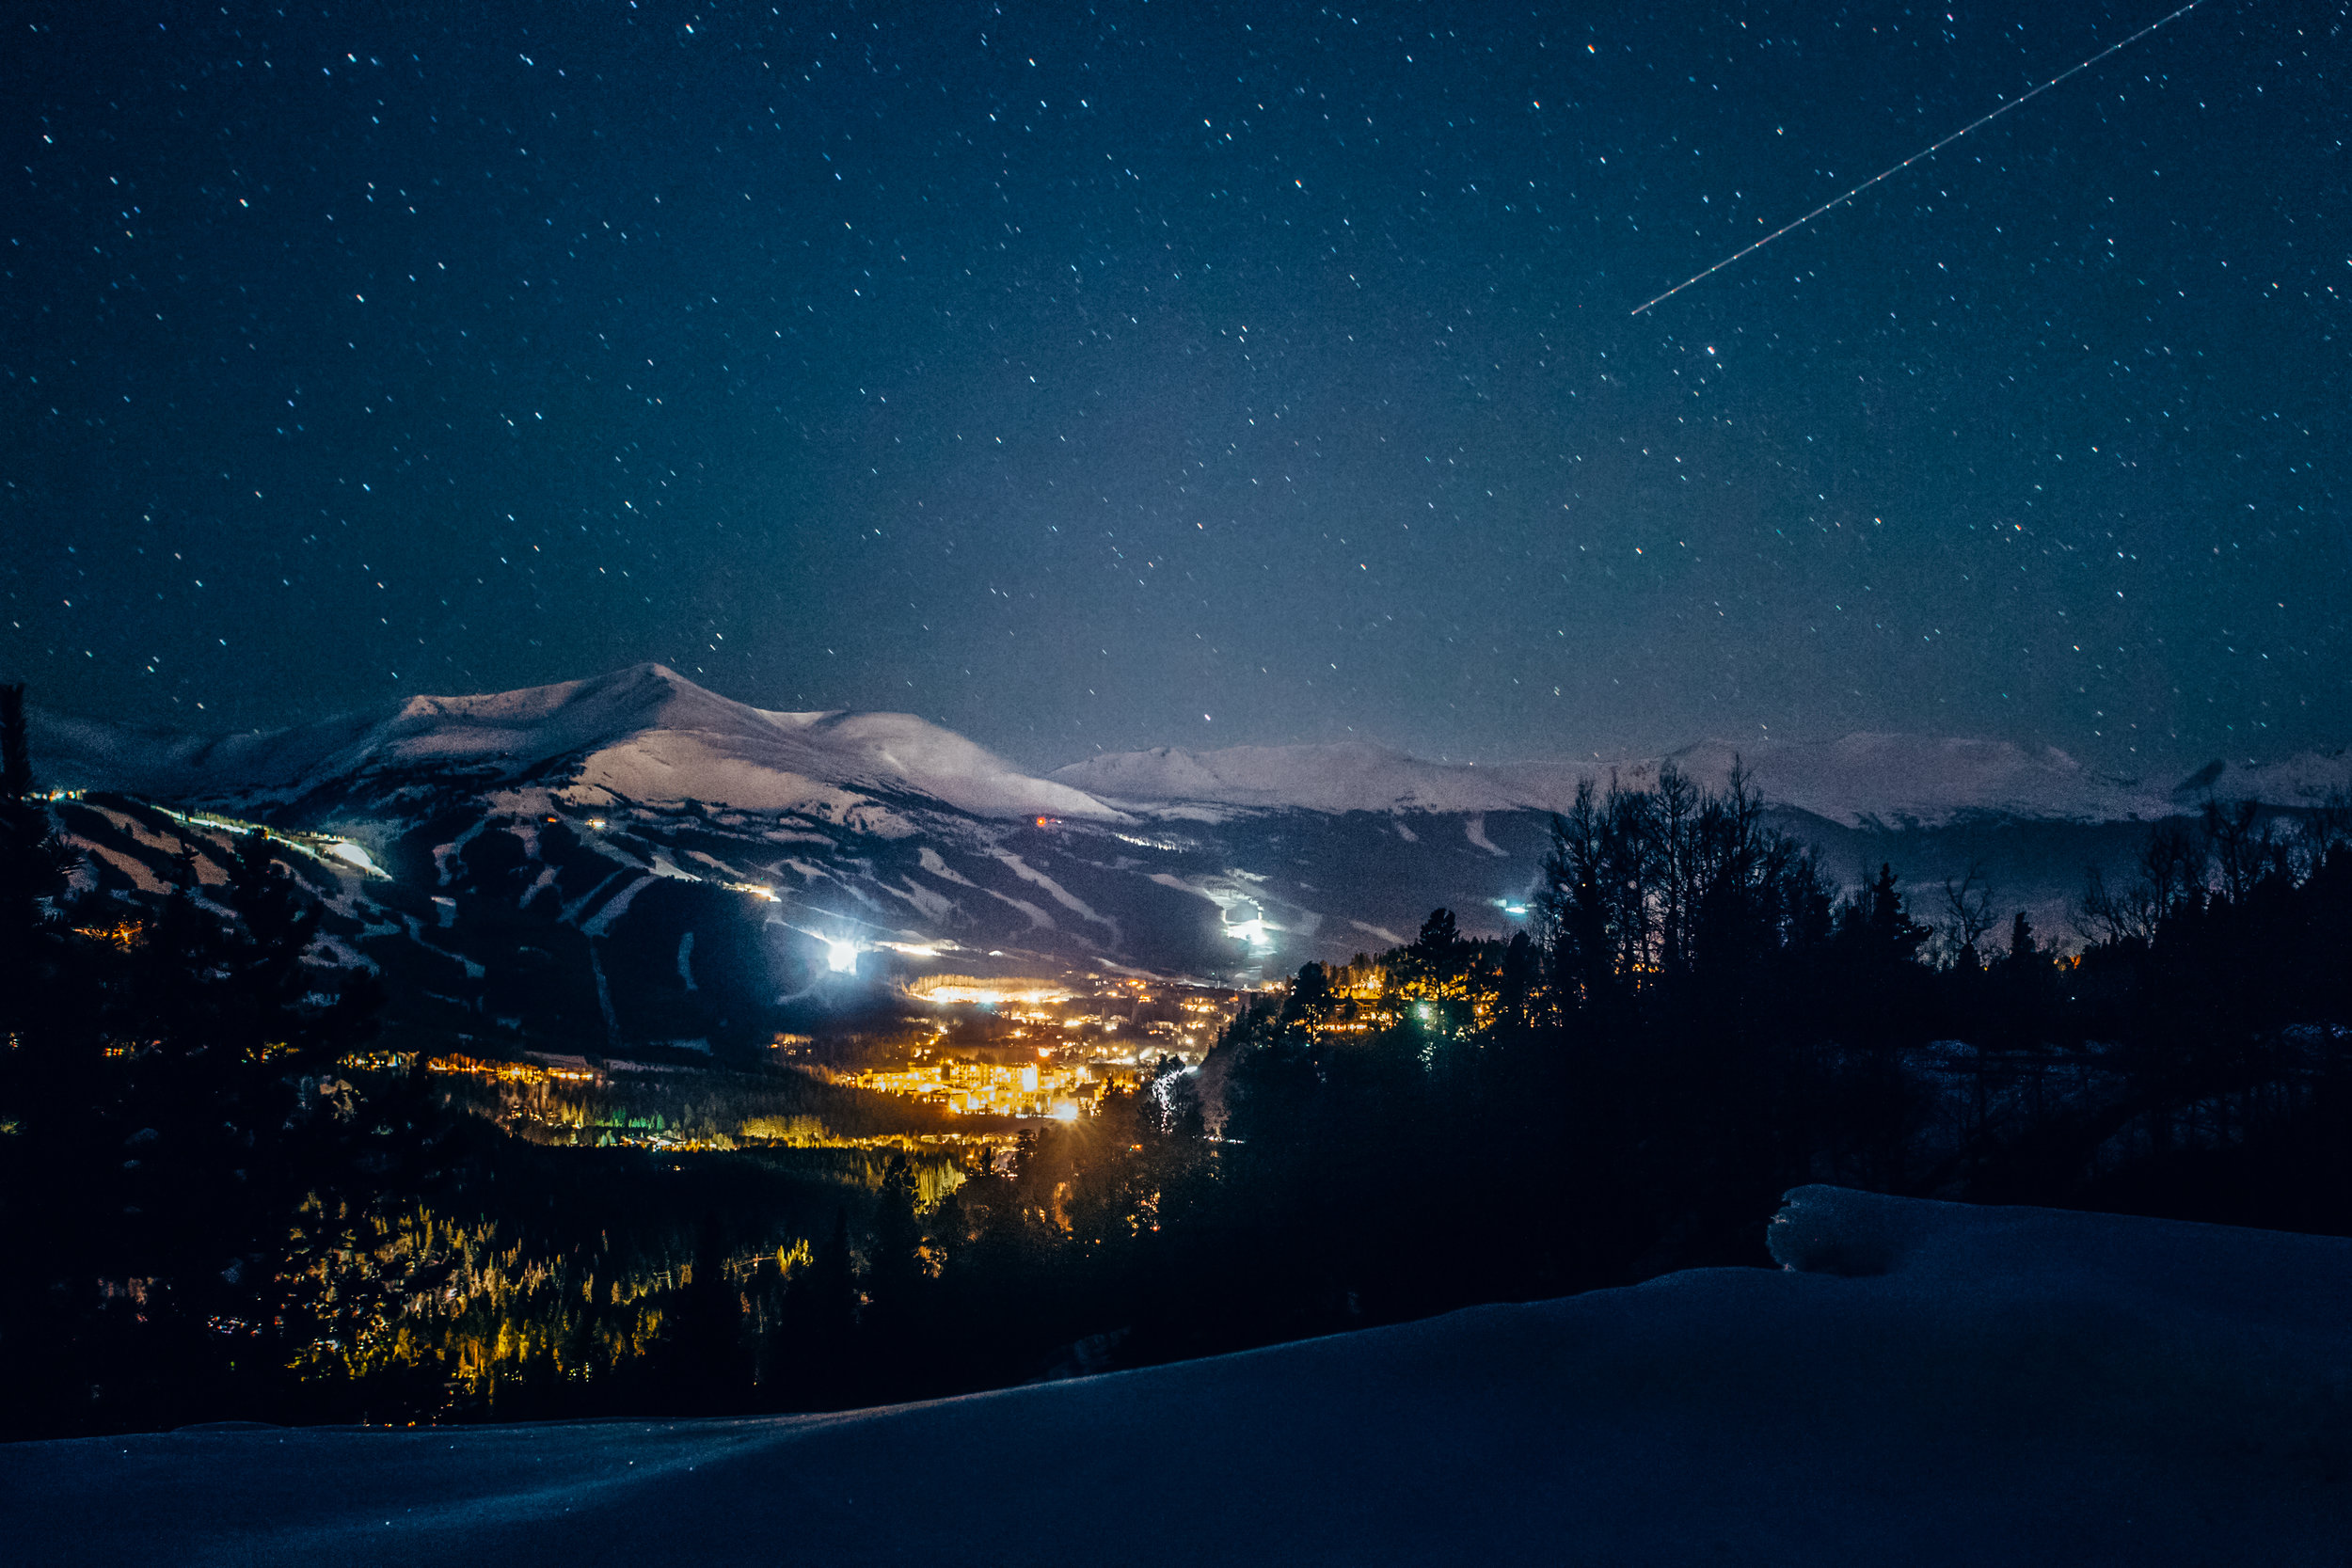 Breckenridge at Night | Breckenridge, Colorado | 2015 | © Christy Hydeck